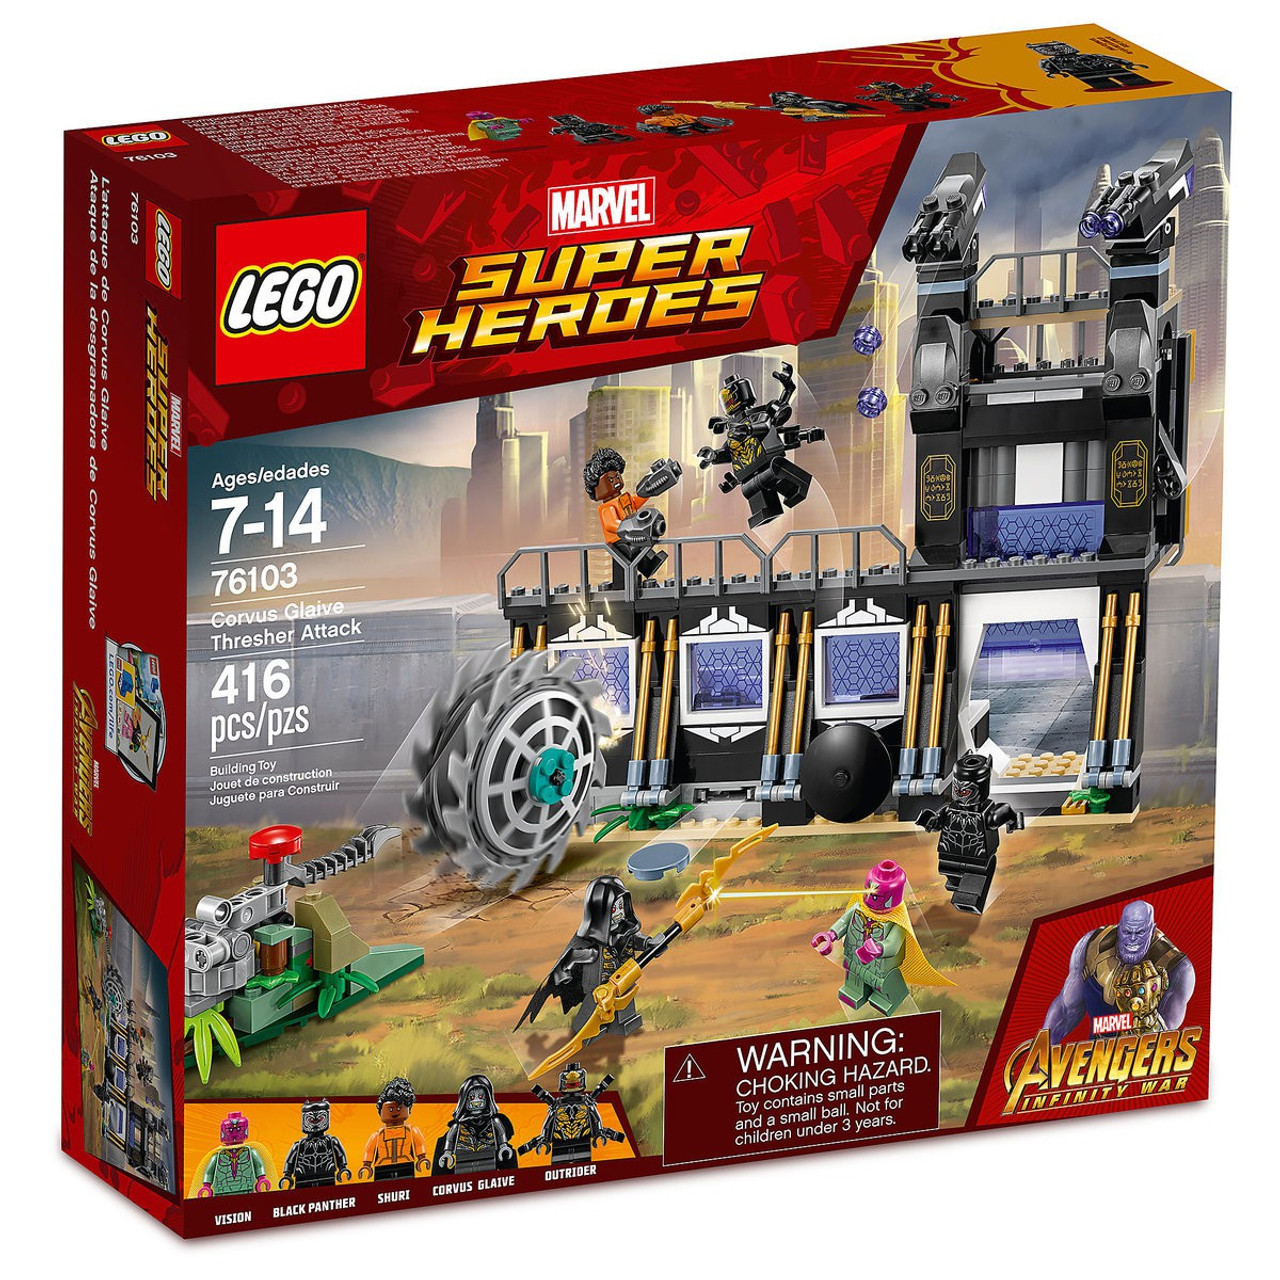 LEGO Marvel Super Heroes Outrider MINIFIG from Lego set #76103 Brand New